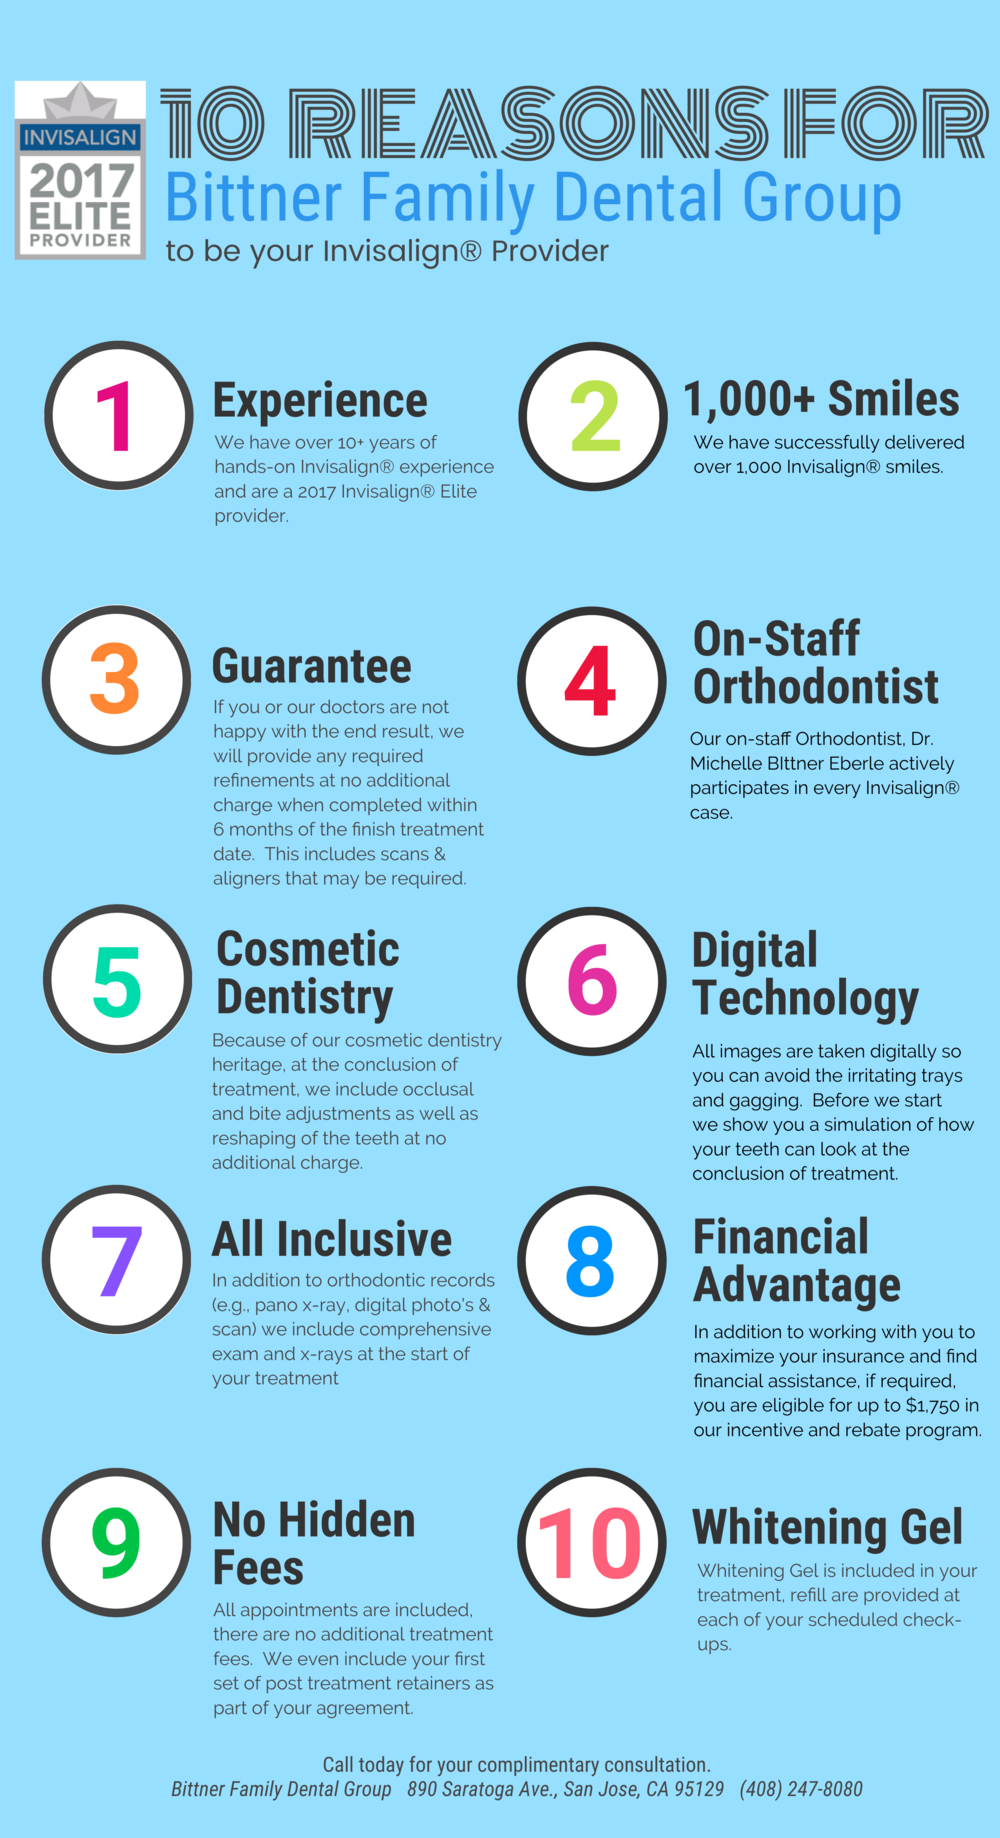 Looking for an Invisalign Provider®? Top 10 Reasons to Choose Us